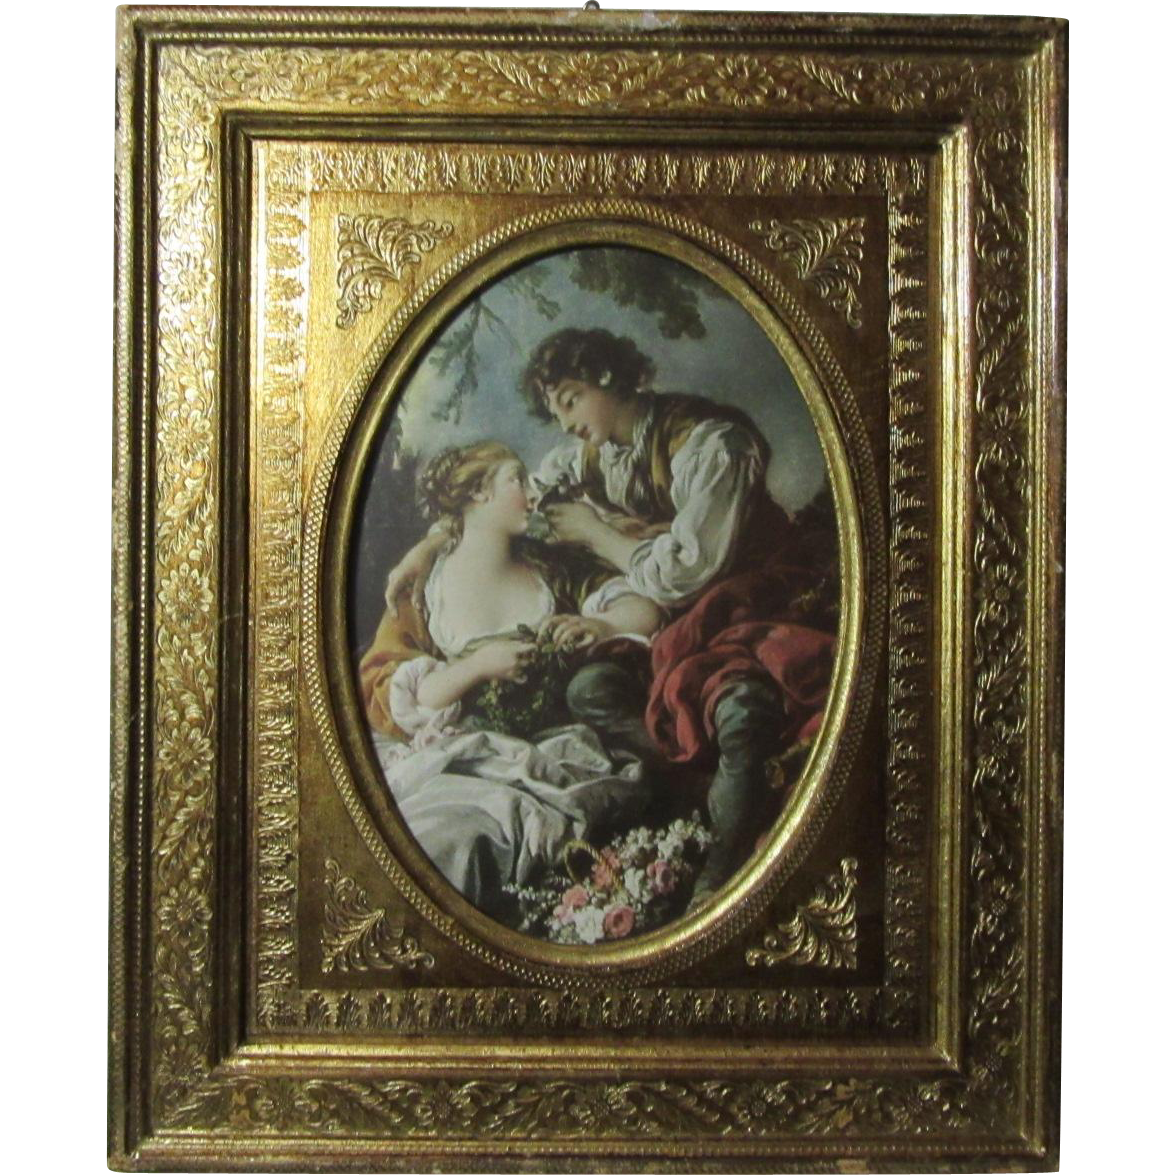 Italian Florentinen Gold Gilt Frame With Original Print of Boucher Love Scene